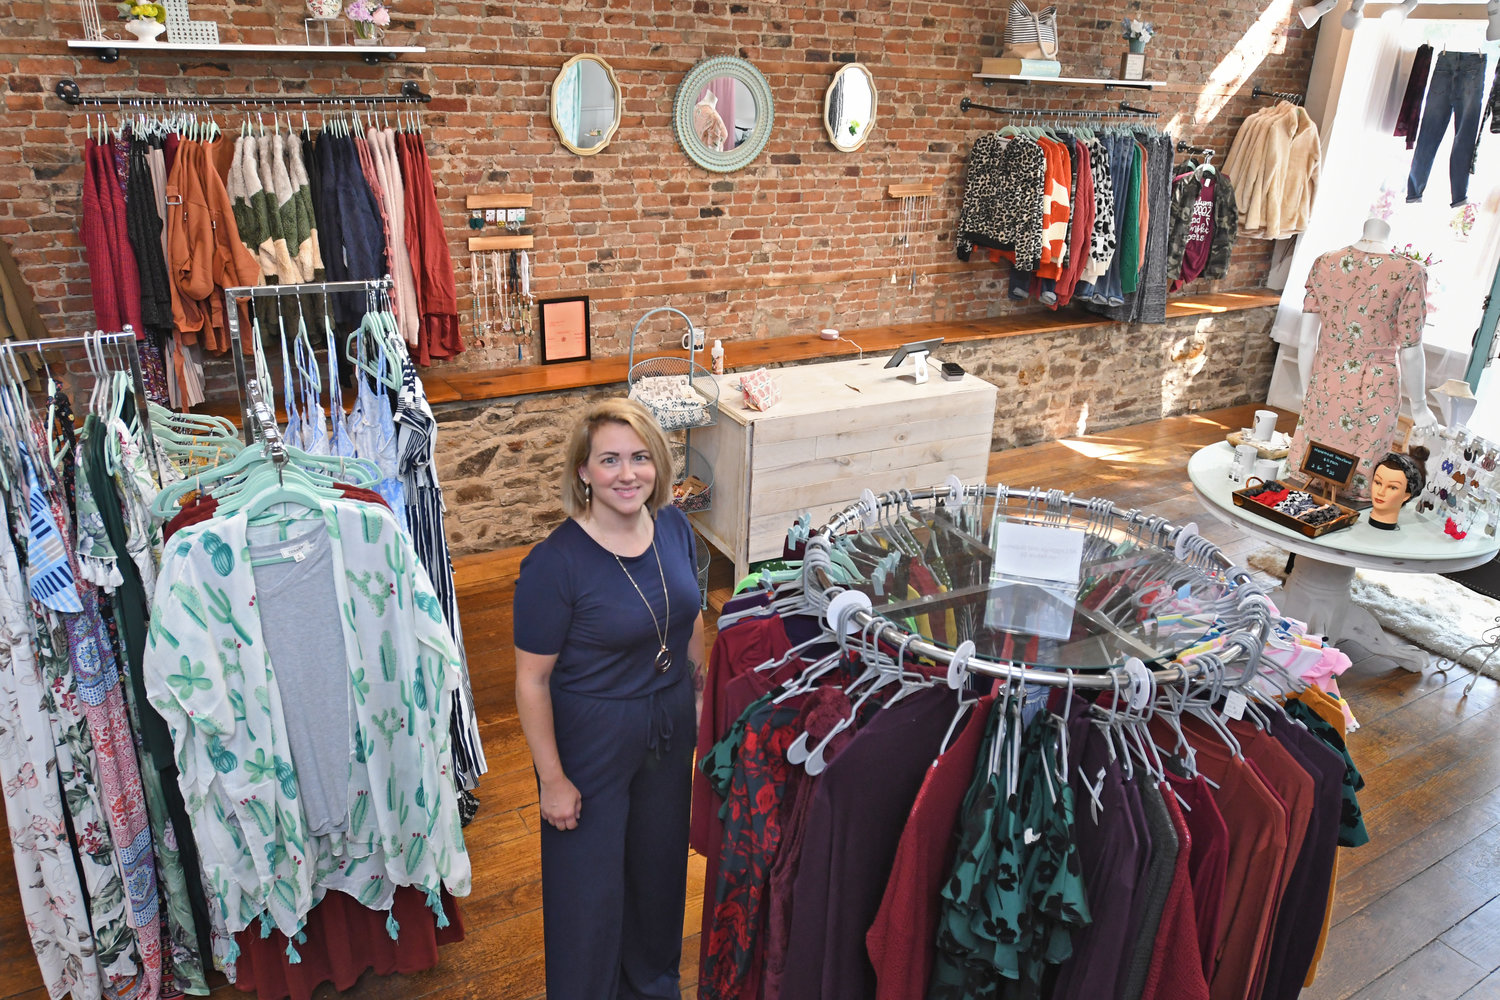 A LOVE FOR FASHION — Noel Visalli, owner of Lucianna's Boutique at 13 W. Park Row in Clinton, shows some of the women's clothing available for sale inside her new shop, located at the former Adirondack Cheese Co. store.